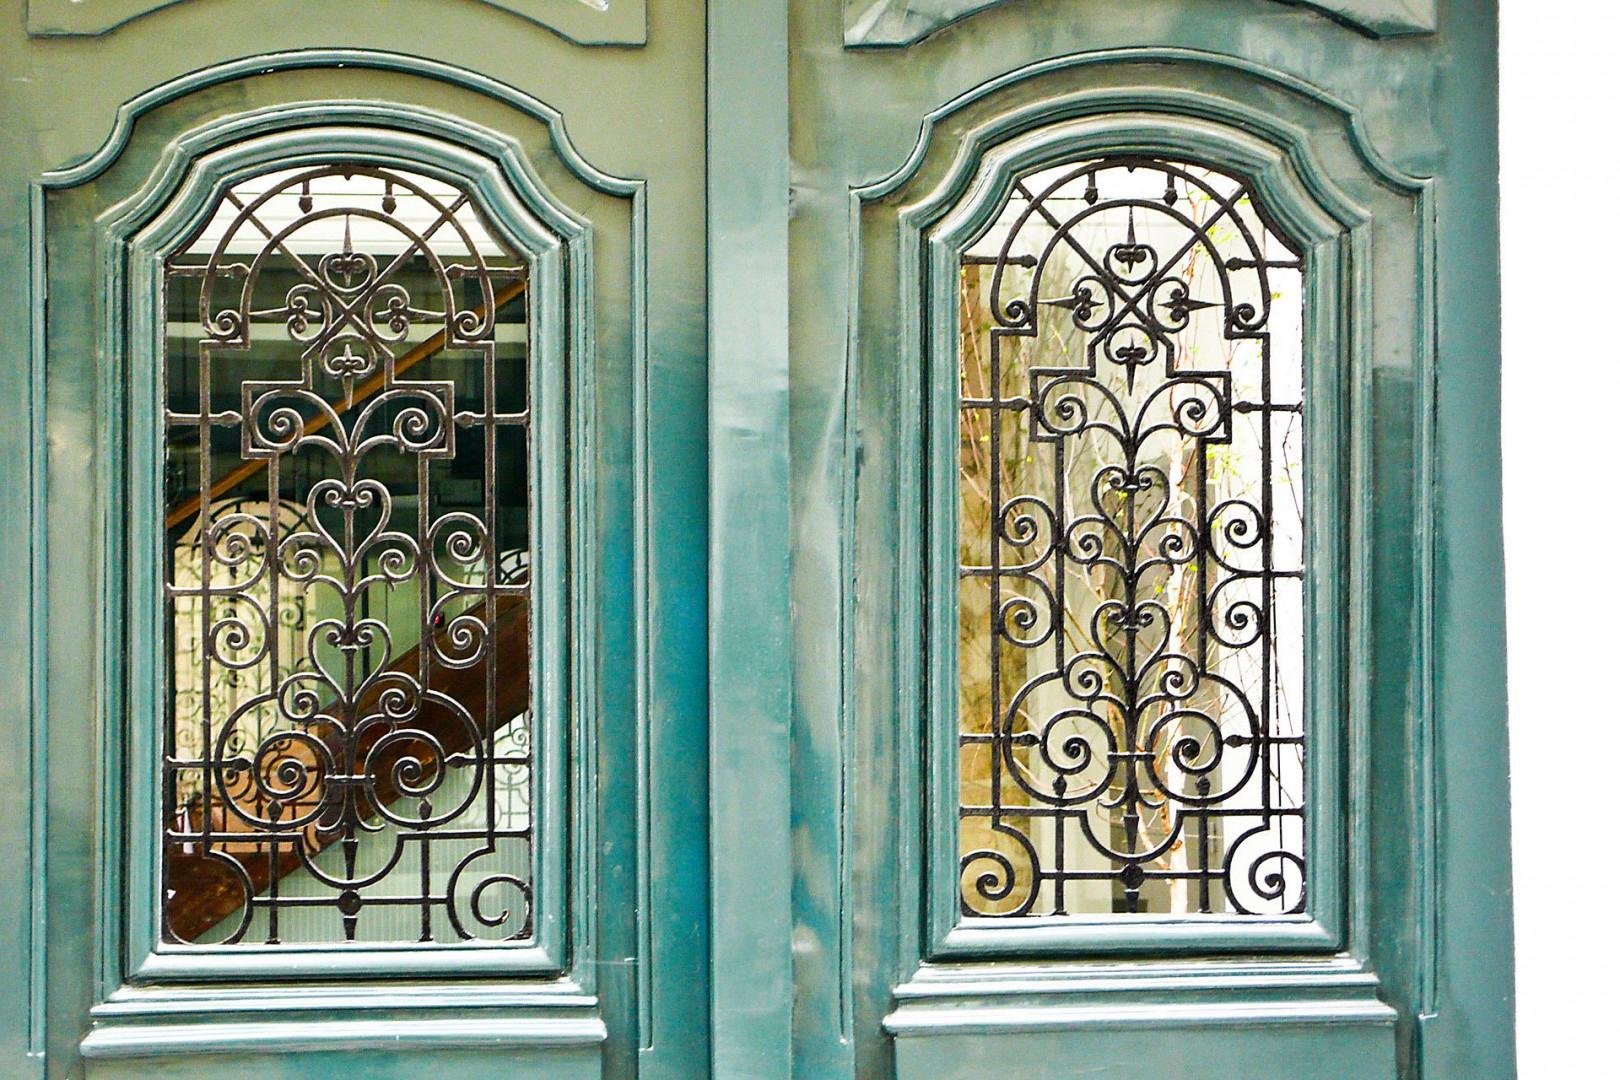 See the courtyard through the glass of these antique doors.